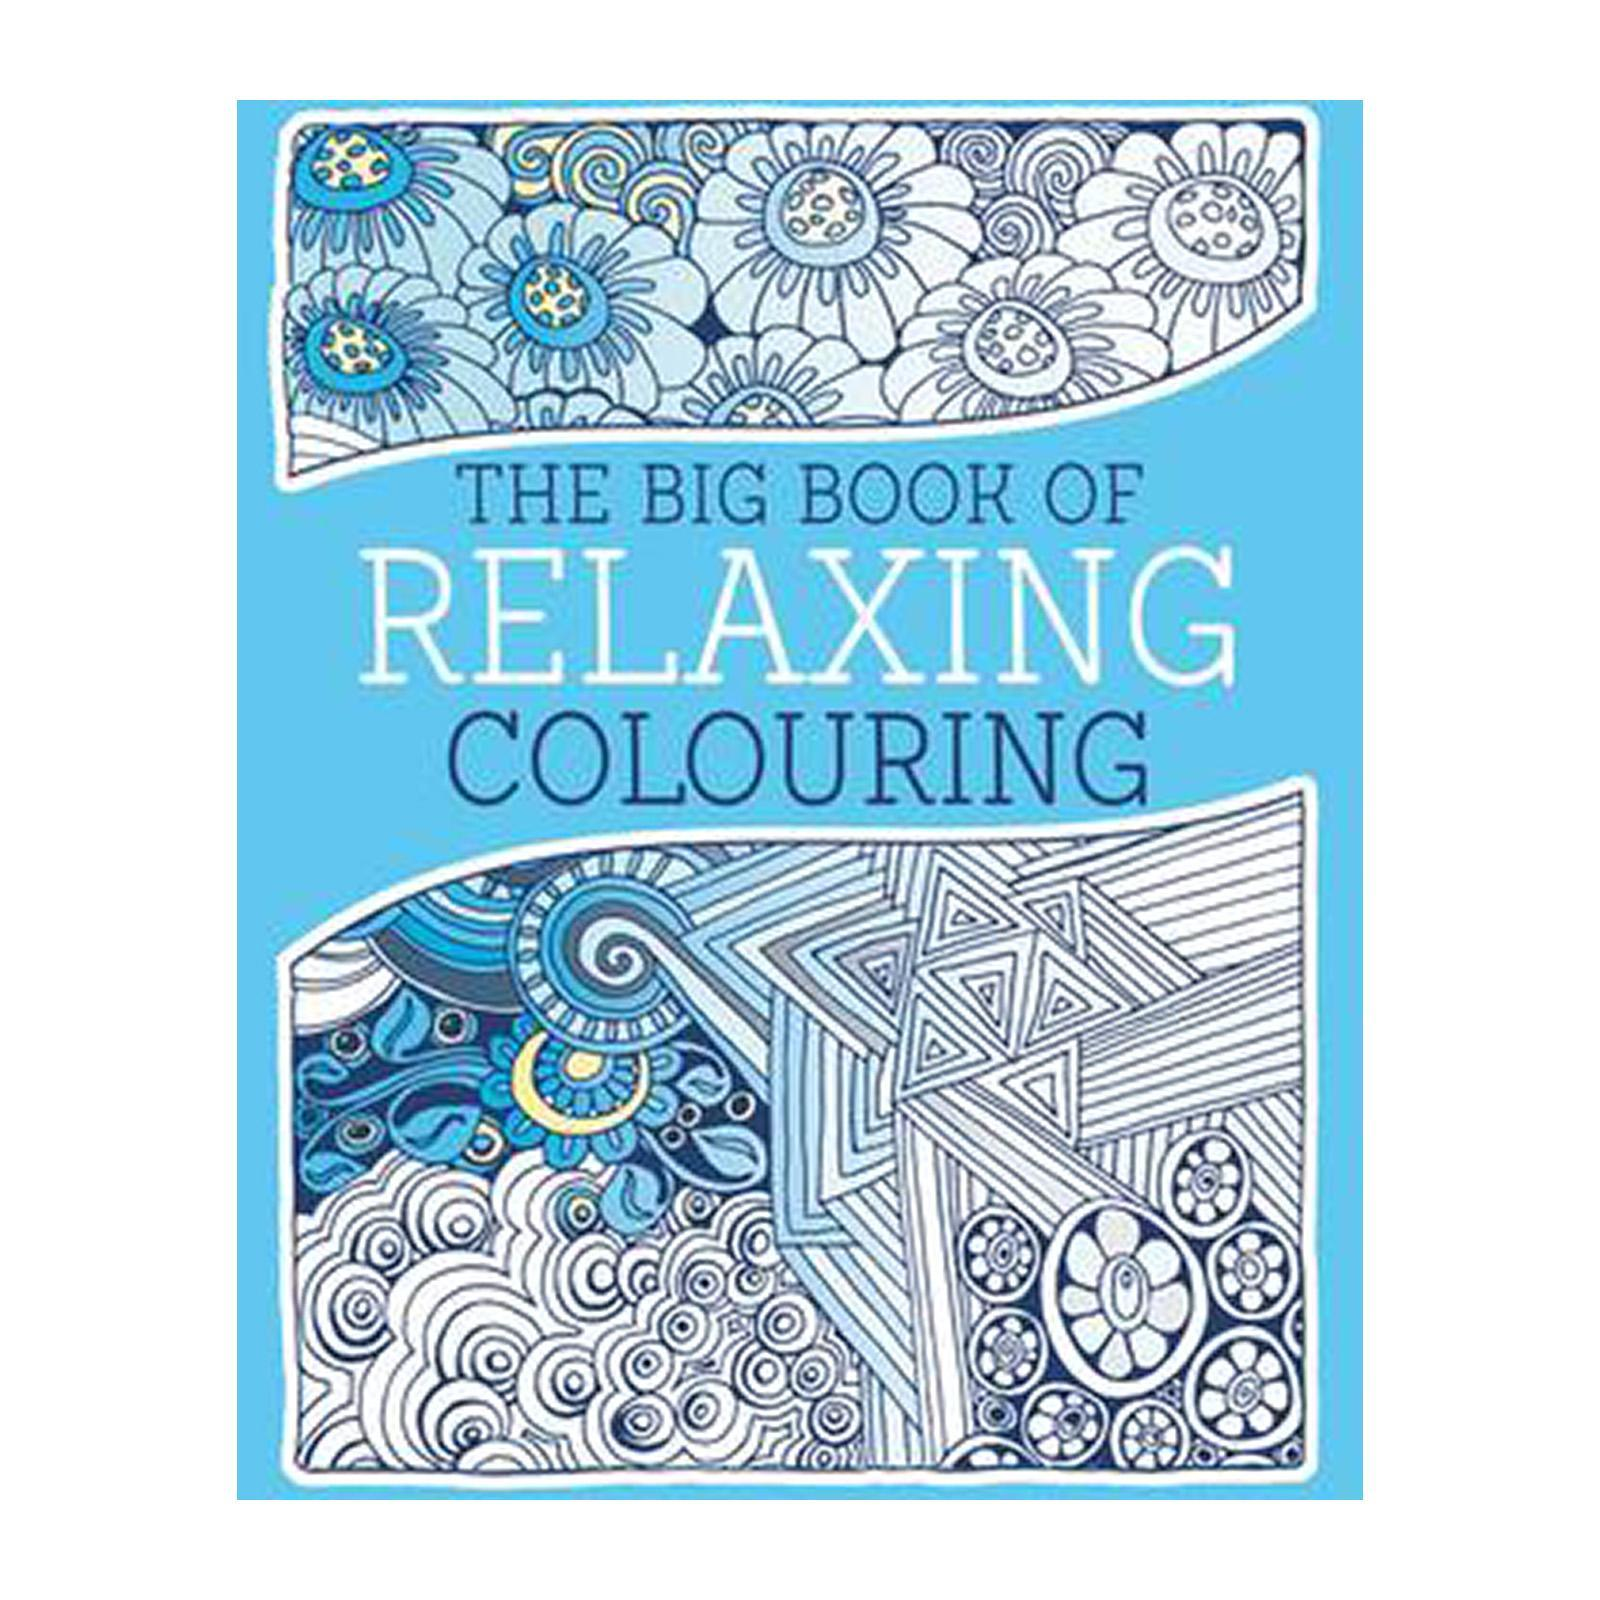 The Big Book Of Relaxing Colouring (Paperback)